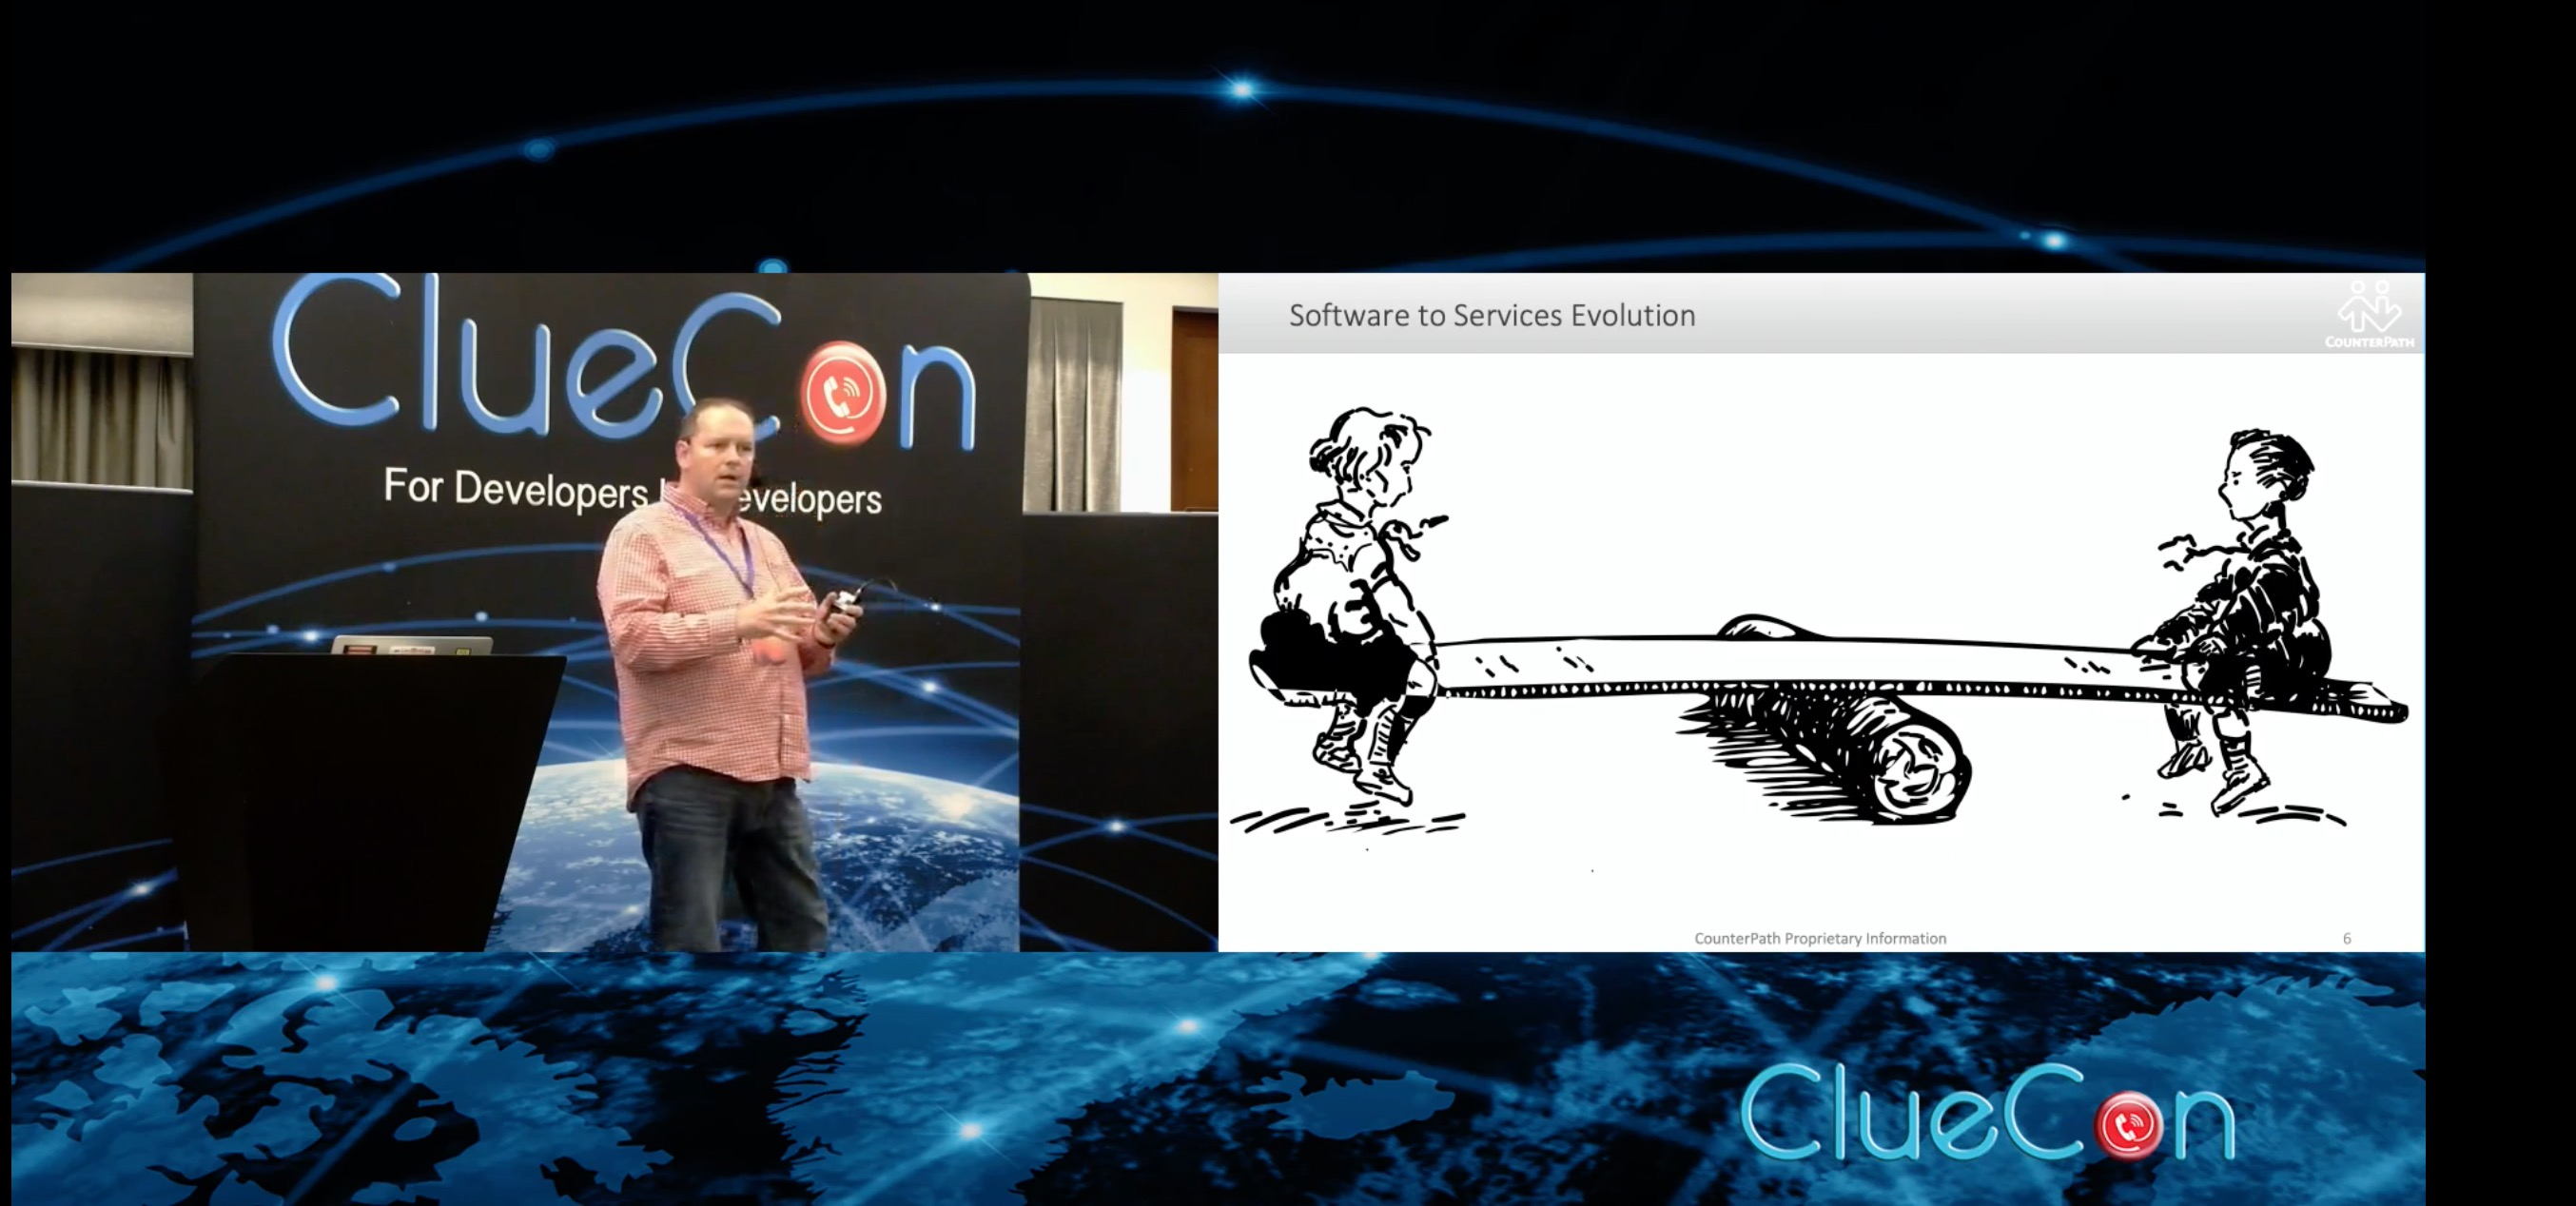 Jim presenting at ClueCon 2019